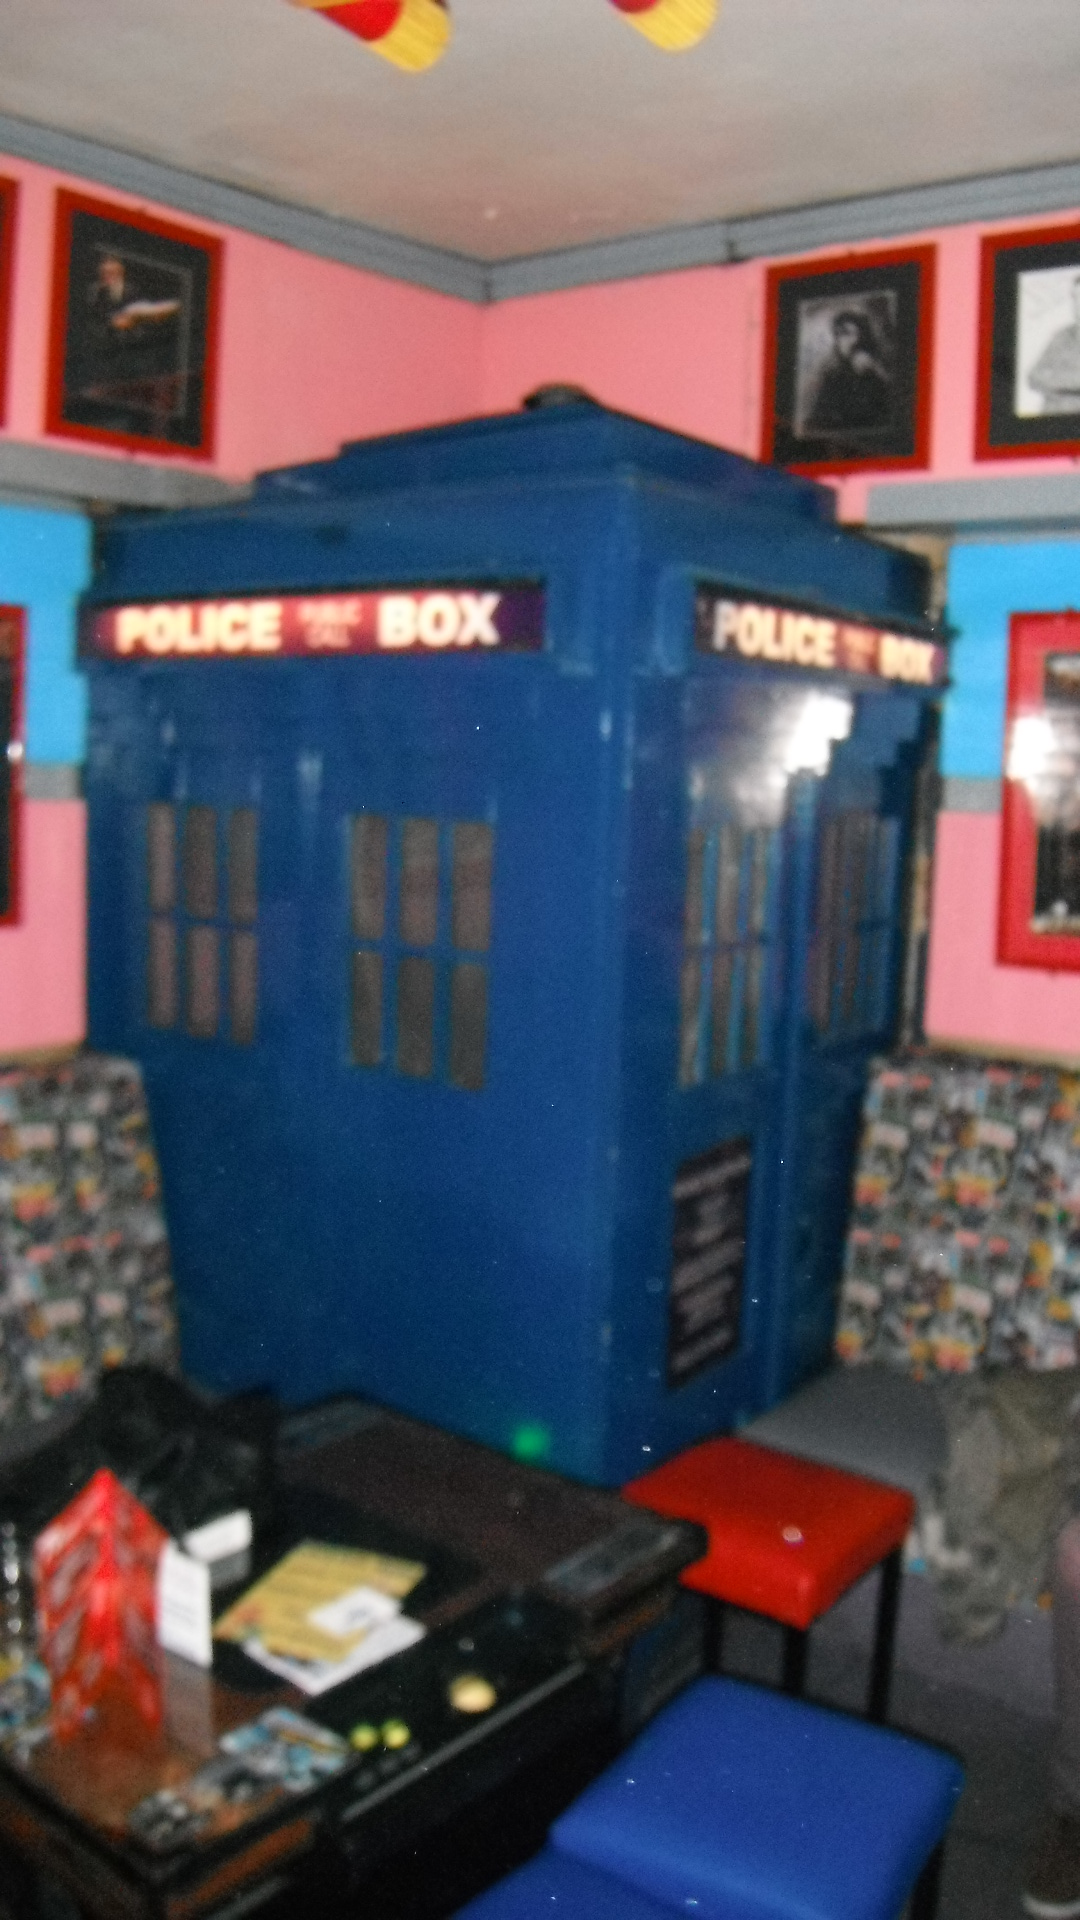 Photo taken by me - The TARDIS in Manchester